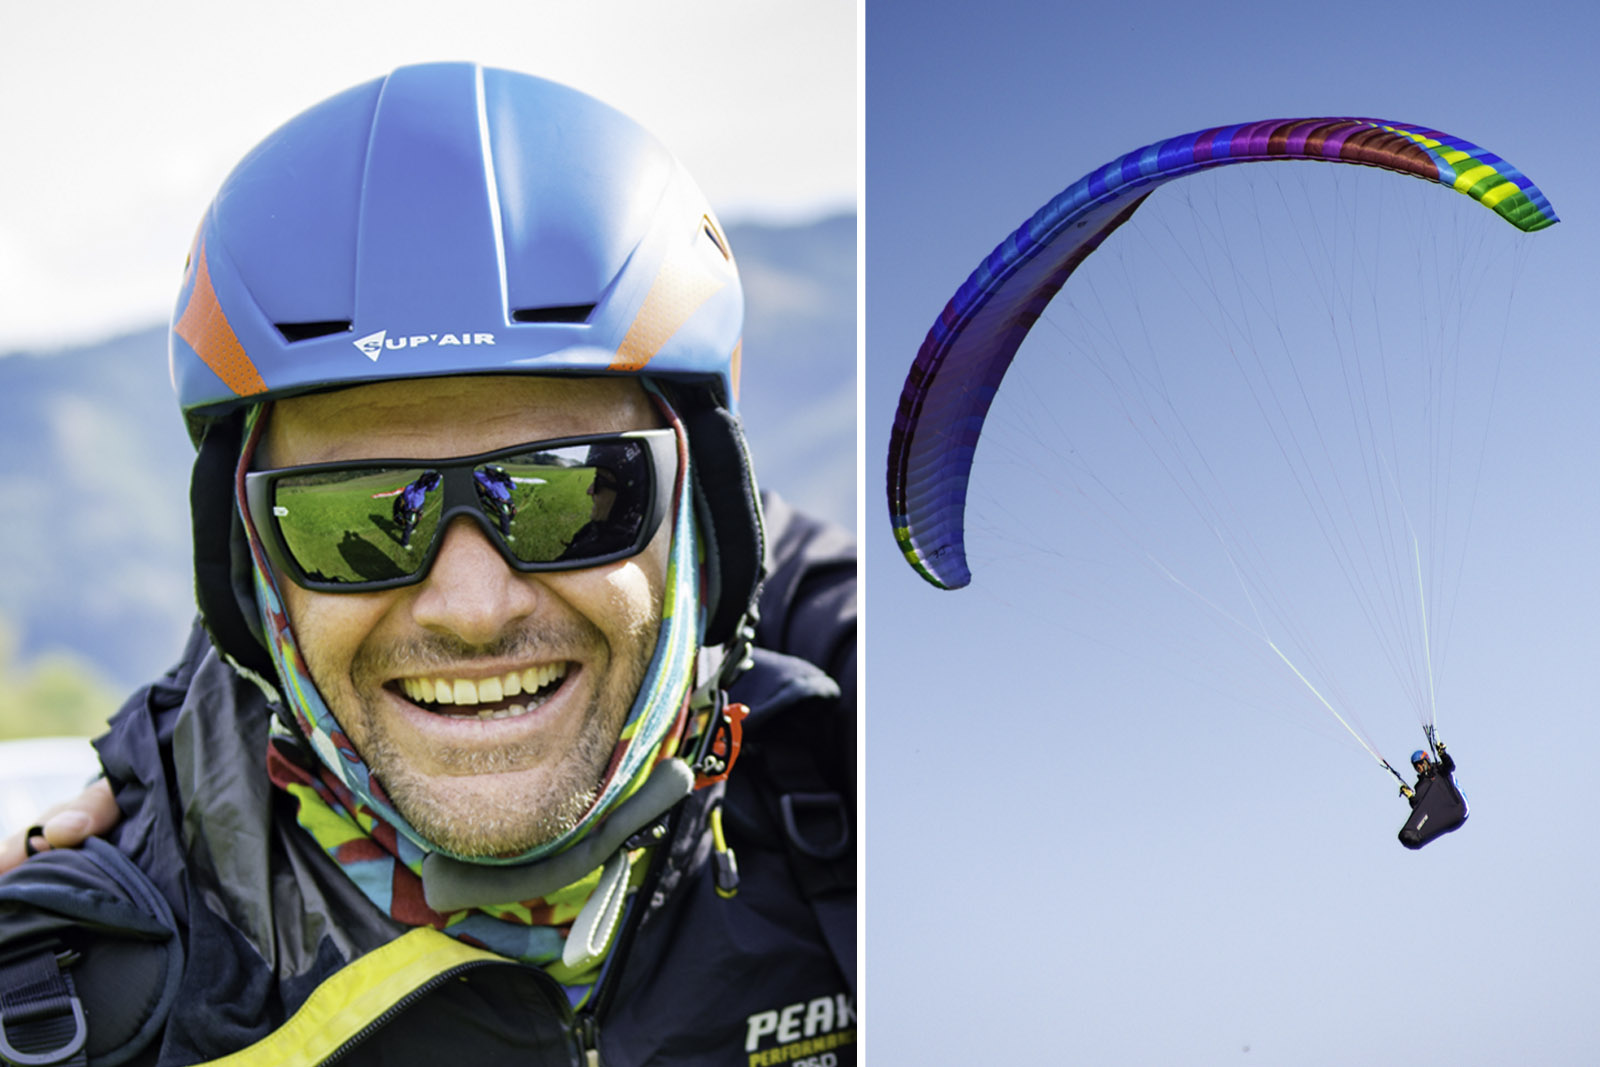 Klaus - real estate agent and paragliding veteran from Fohnsdorf/Styria/Austria